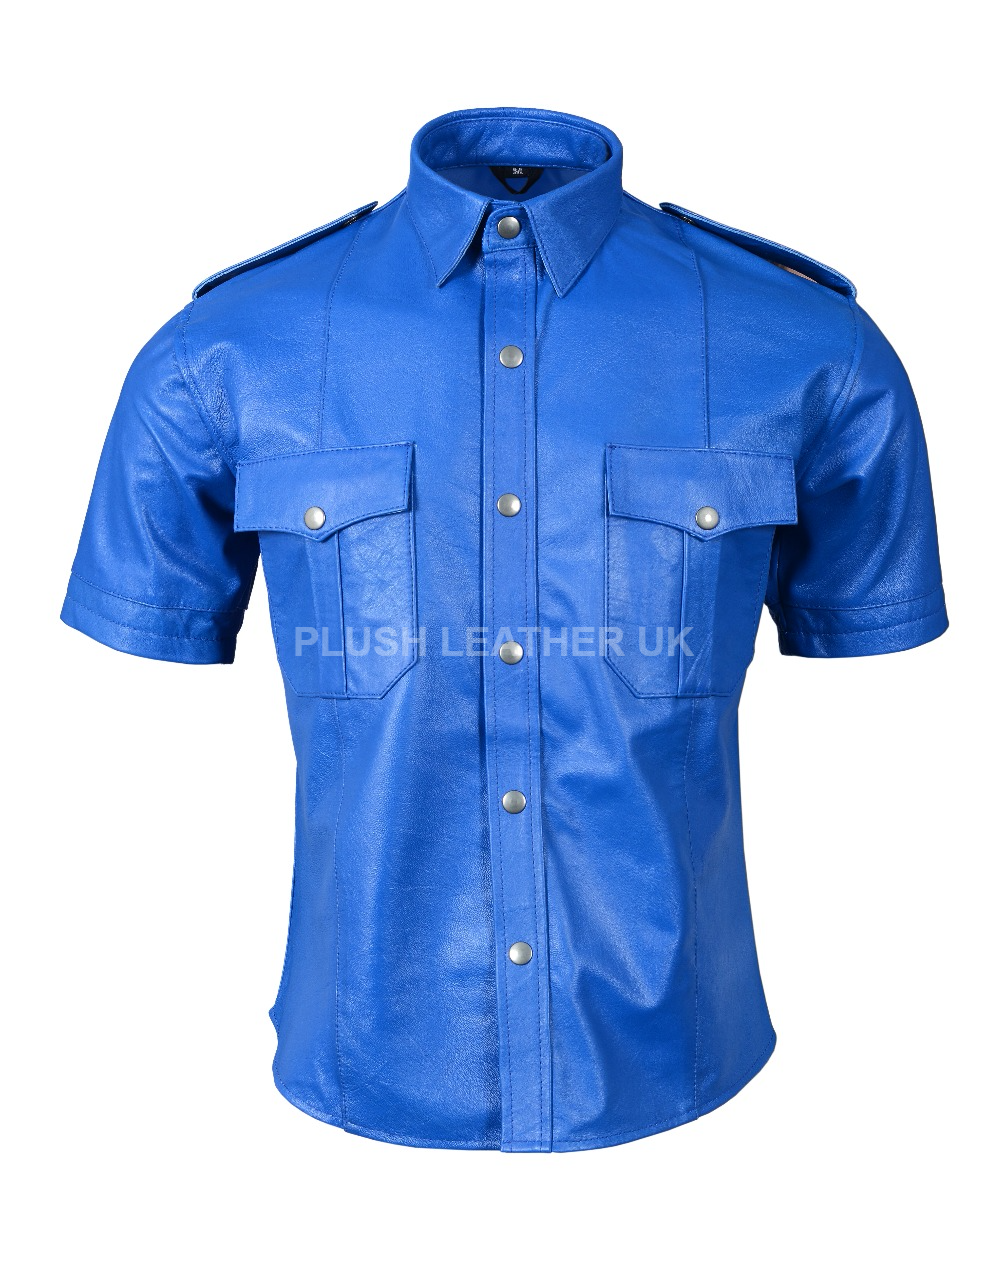 Herren VERY Hot Genuine Sheep LEATHER ALL Blau Police Uniform Shirt BLUF GAY